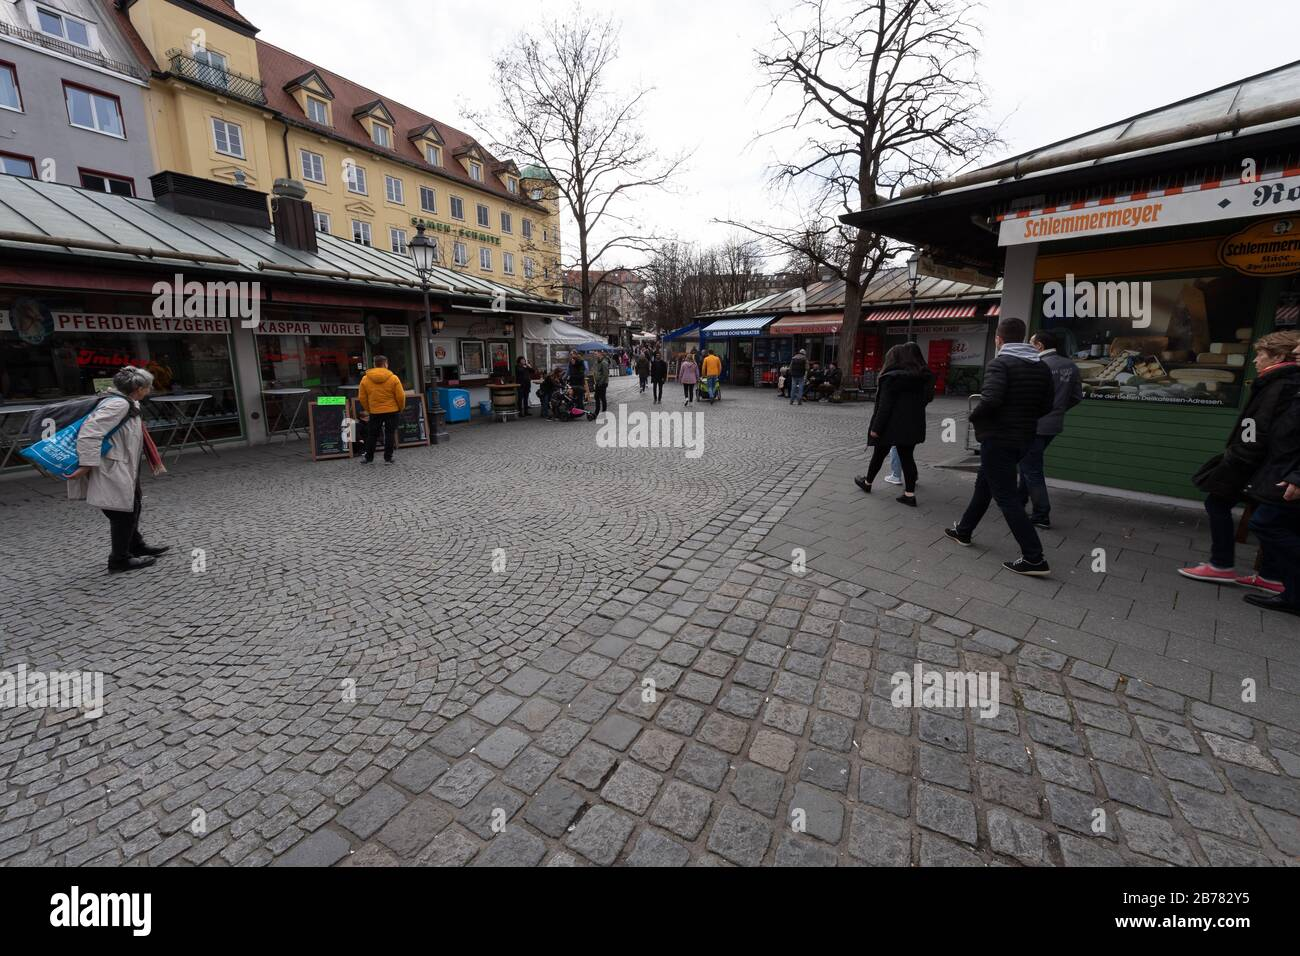 Munich, Germany. 14th Mar, 2020. The Viktualienmarkt, which is otherwise well attended at lunchtime, is only slightly frequented. Credit: Peter Kneffel/dpa/Alamy Live News Stock Photo